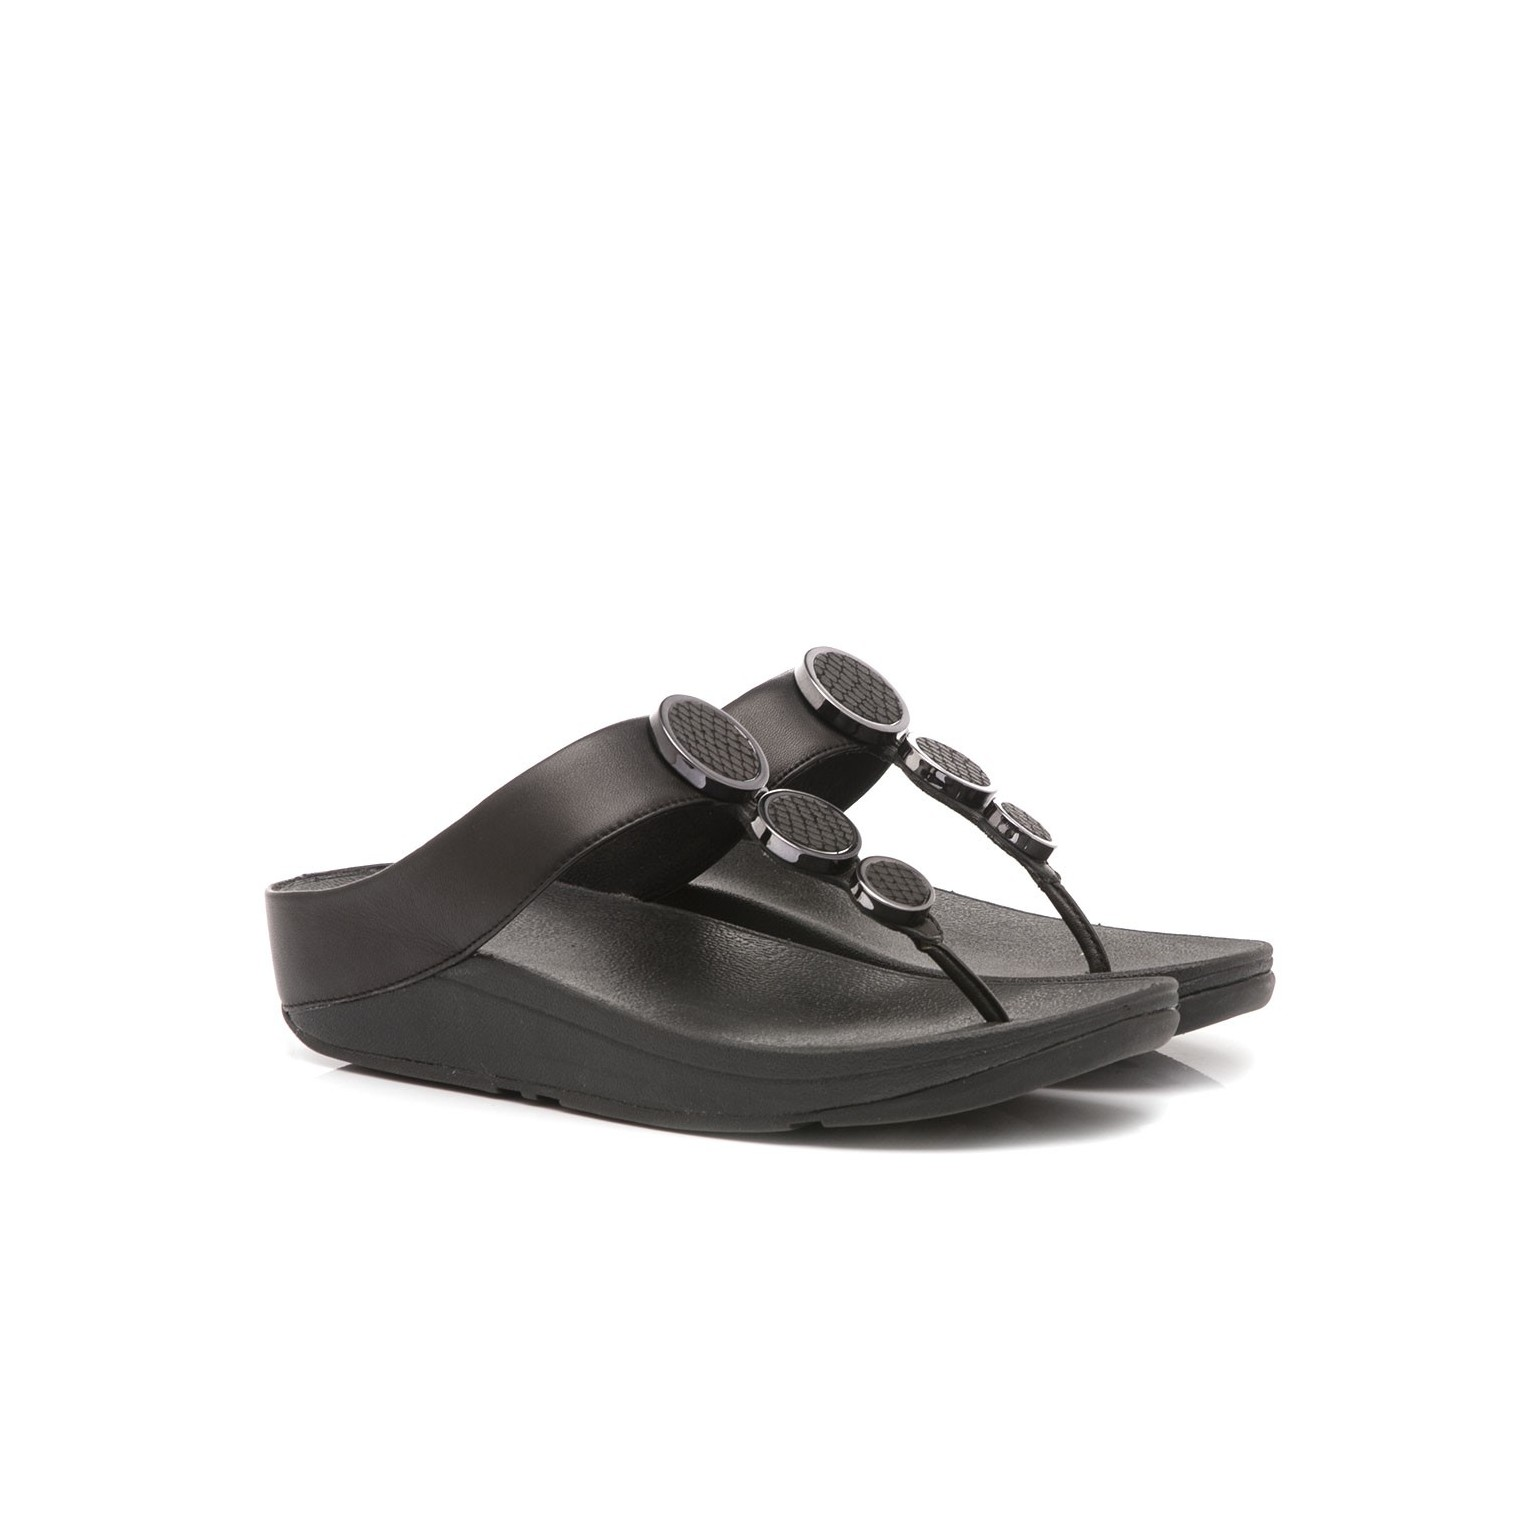 66fc05a255c7 fitflop-women-s-toe-thong-sandals-halo-black.jpg